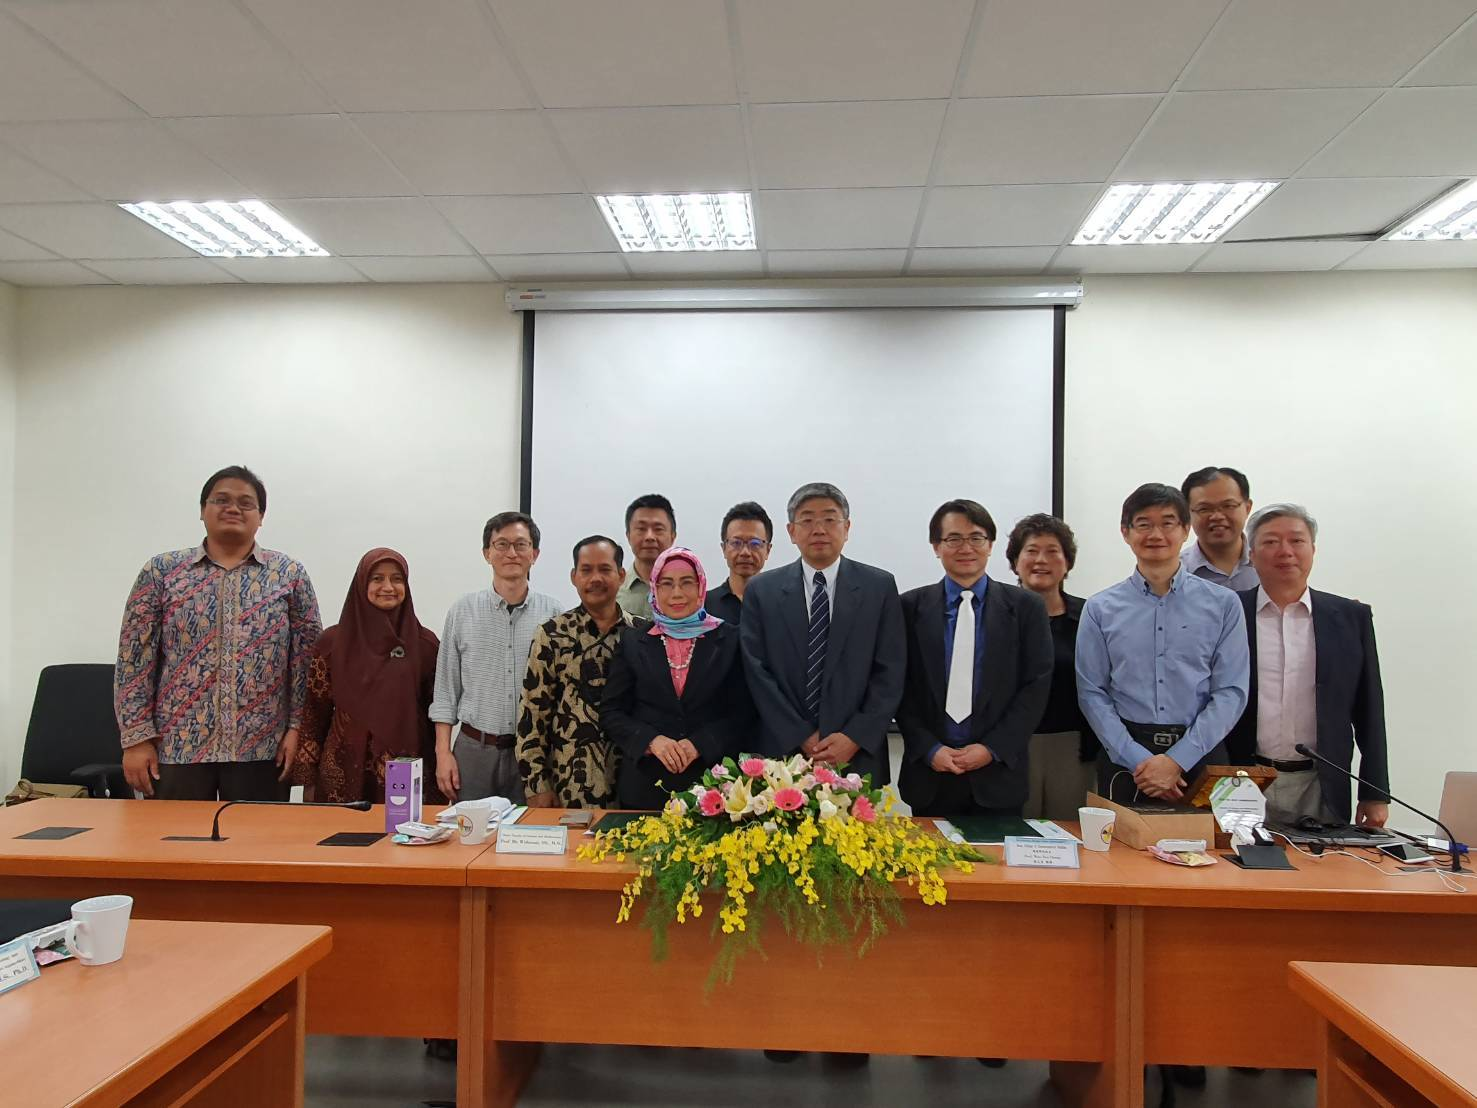 Donghua University College of Environmental Sciences and the Faculty of Science and Mathematics of Universitas Diponegoro signed a memorandum